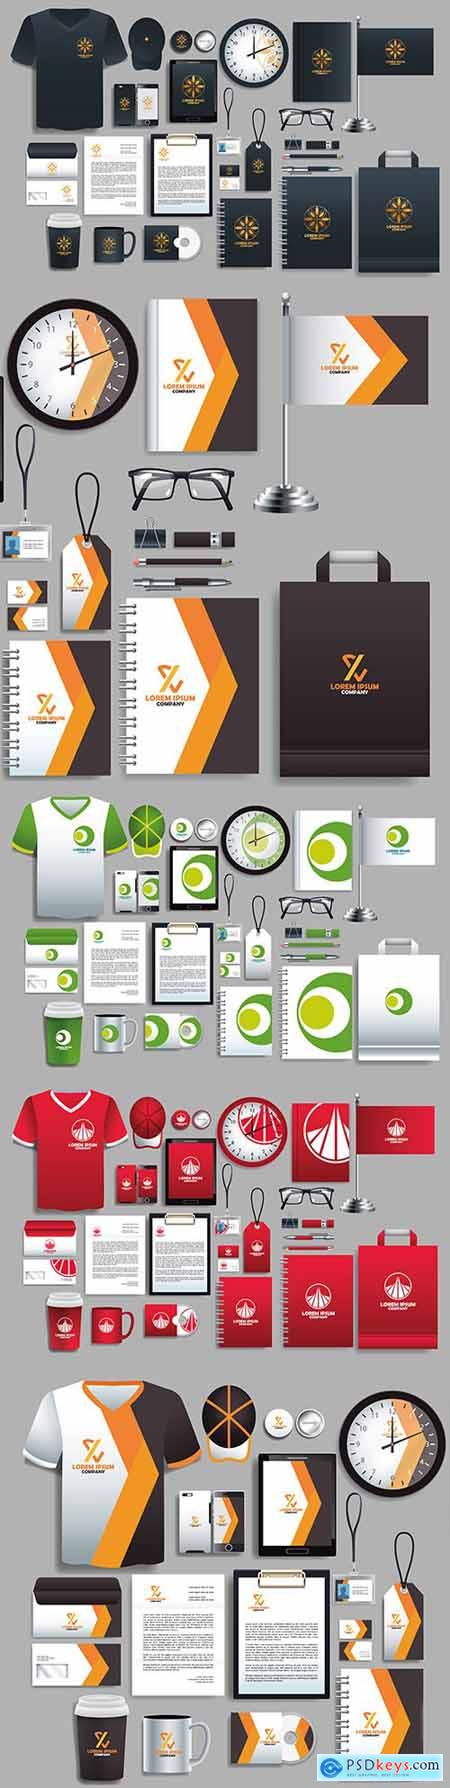 Set of color and white elements stationery templates